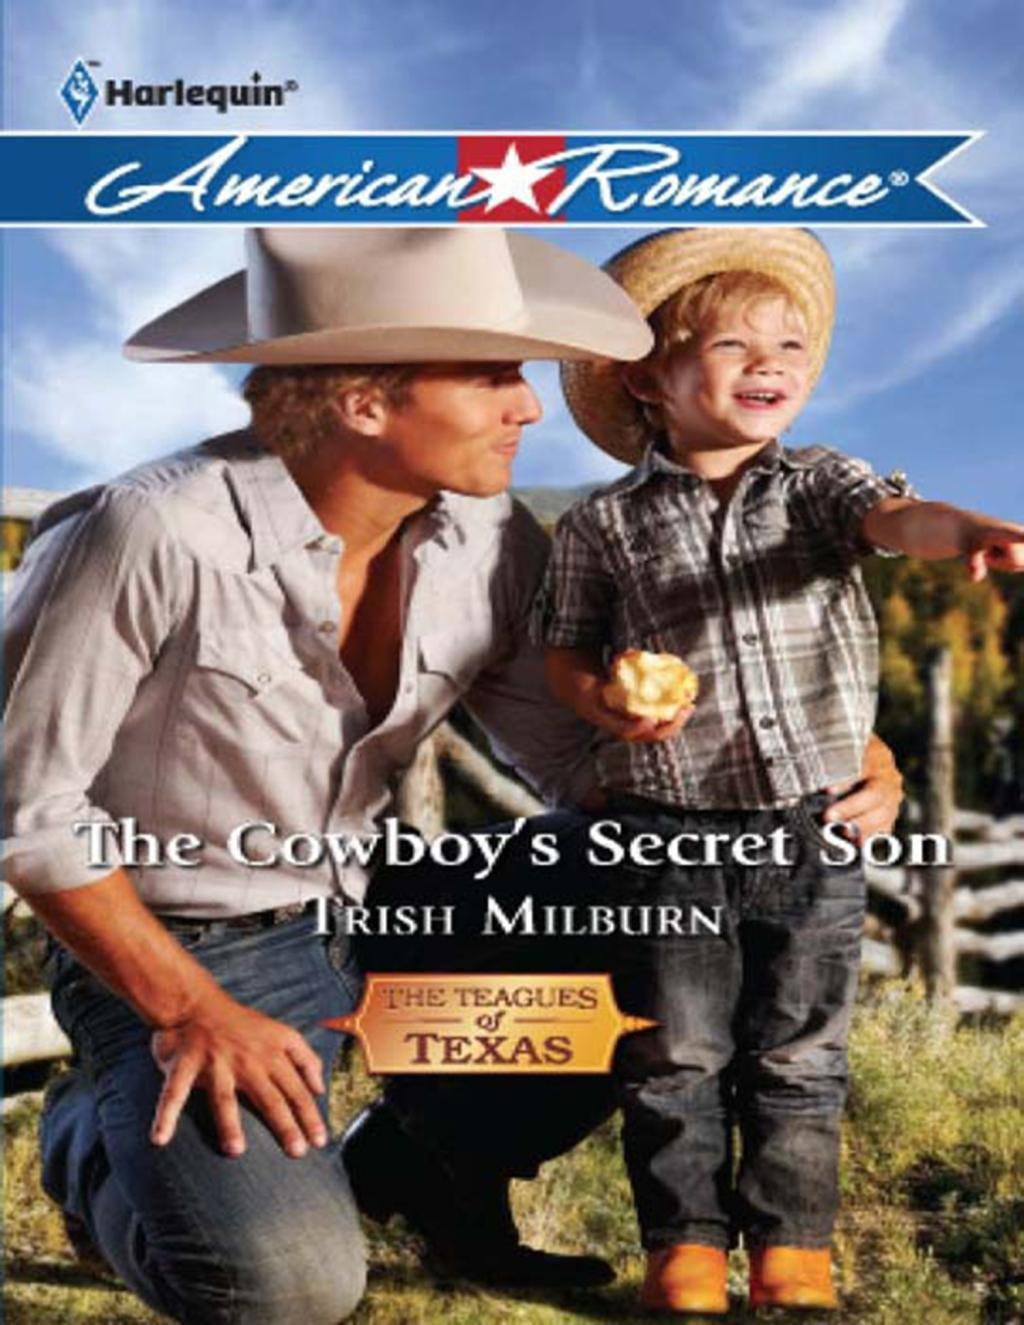 The Cowboy's Secret Son (Mills & Boon American Romance) (The Teagues of Texas, Book 1)